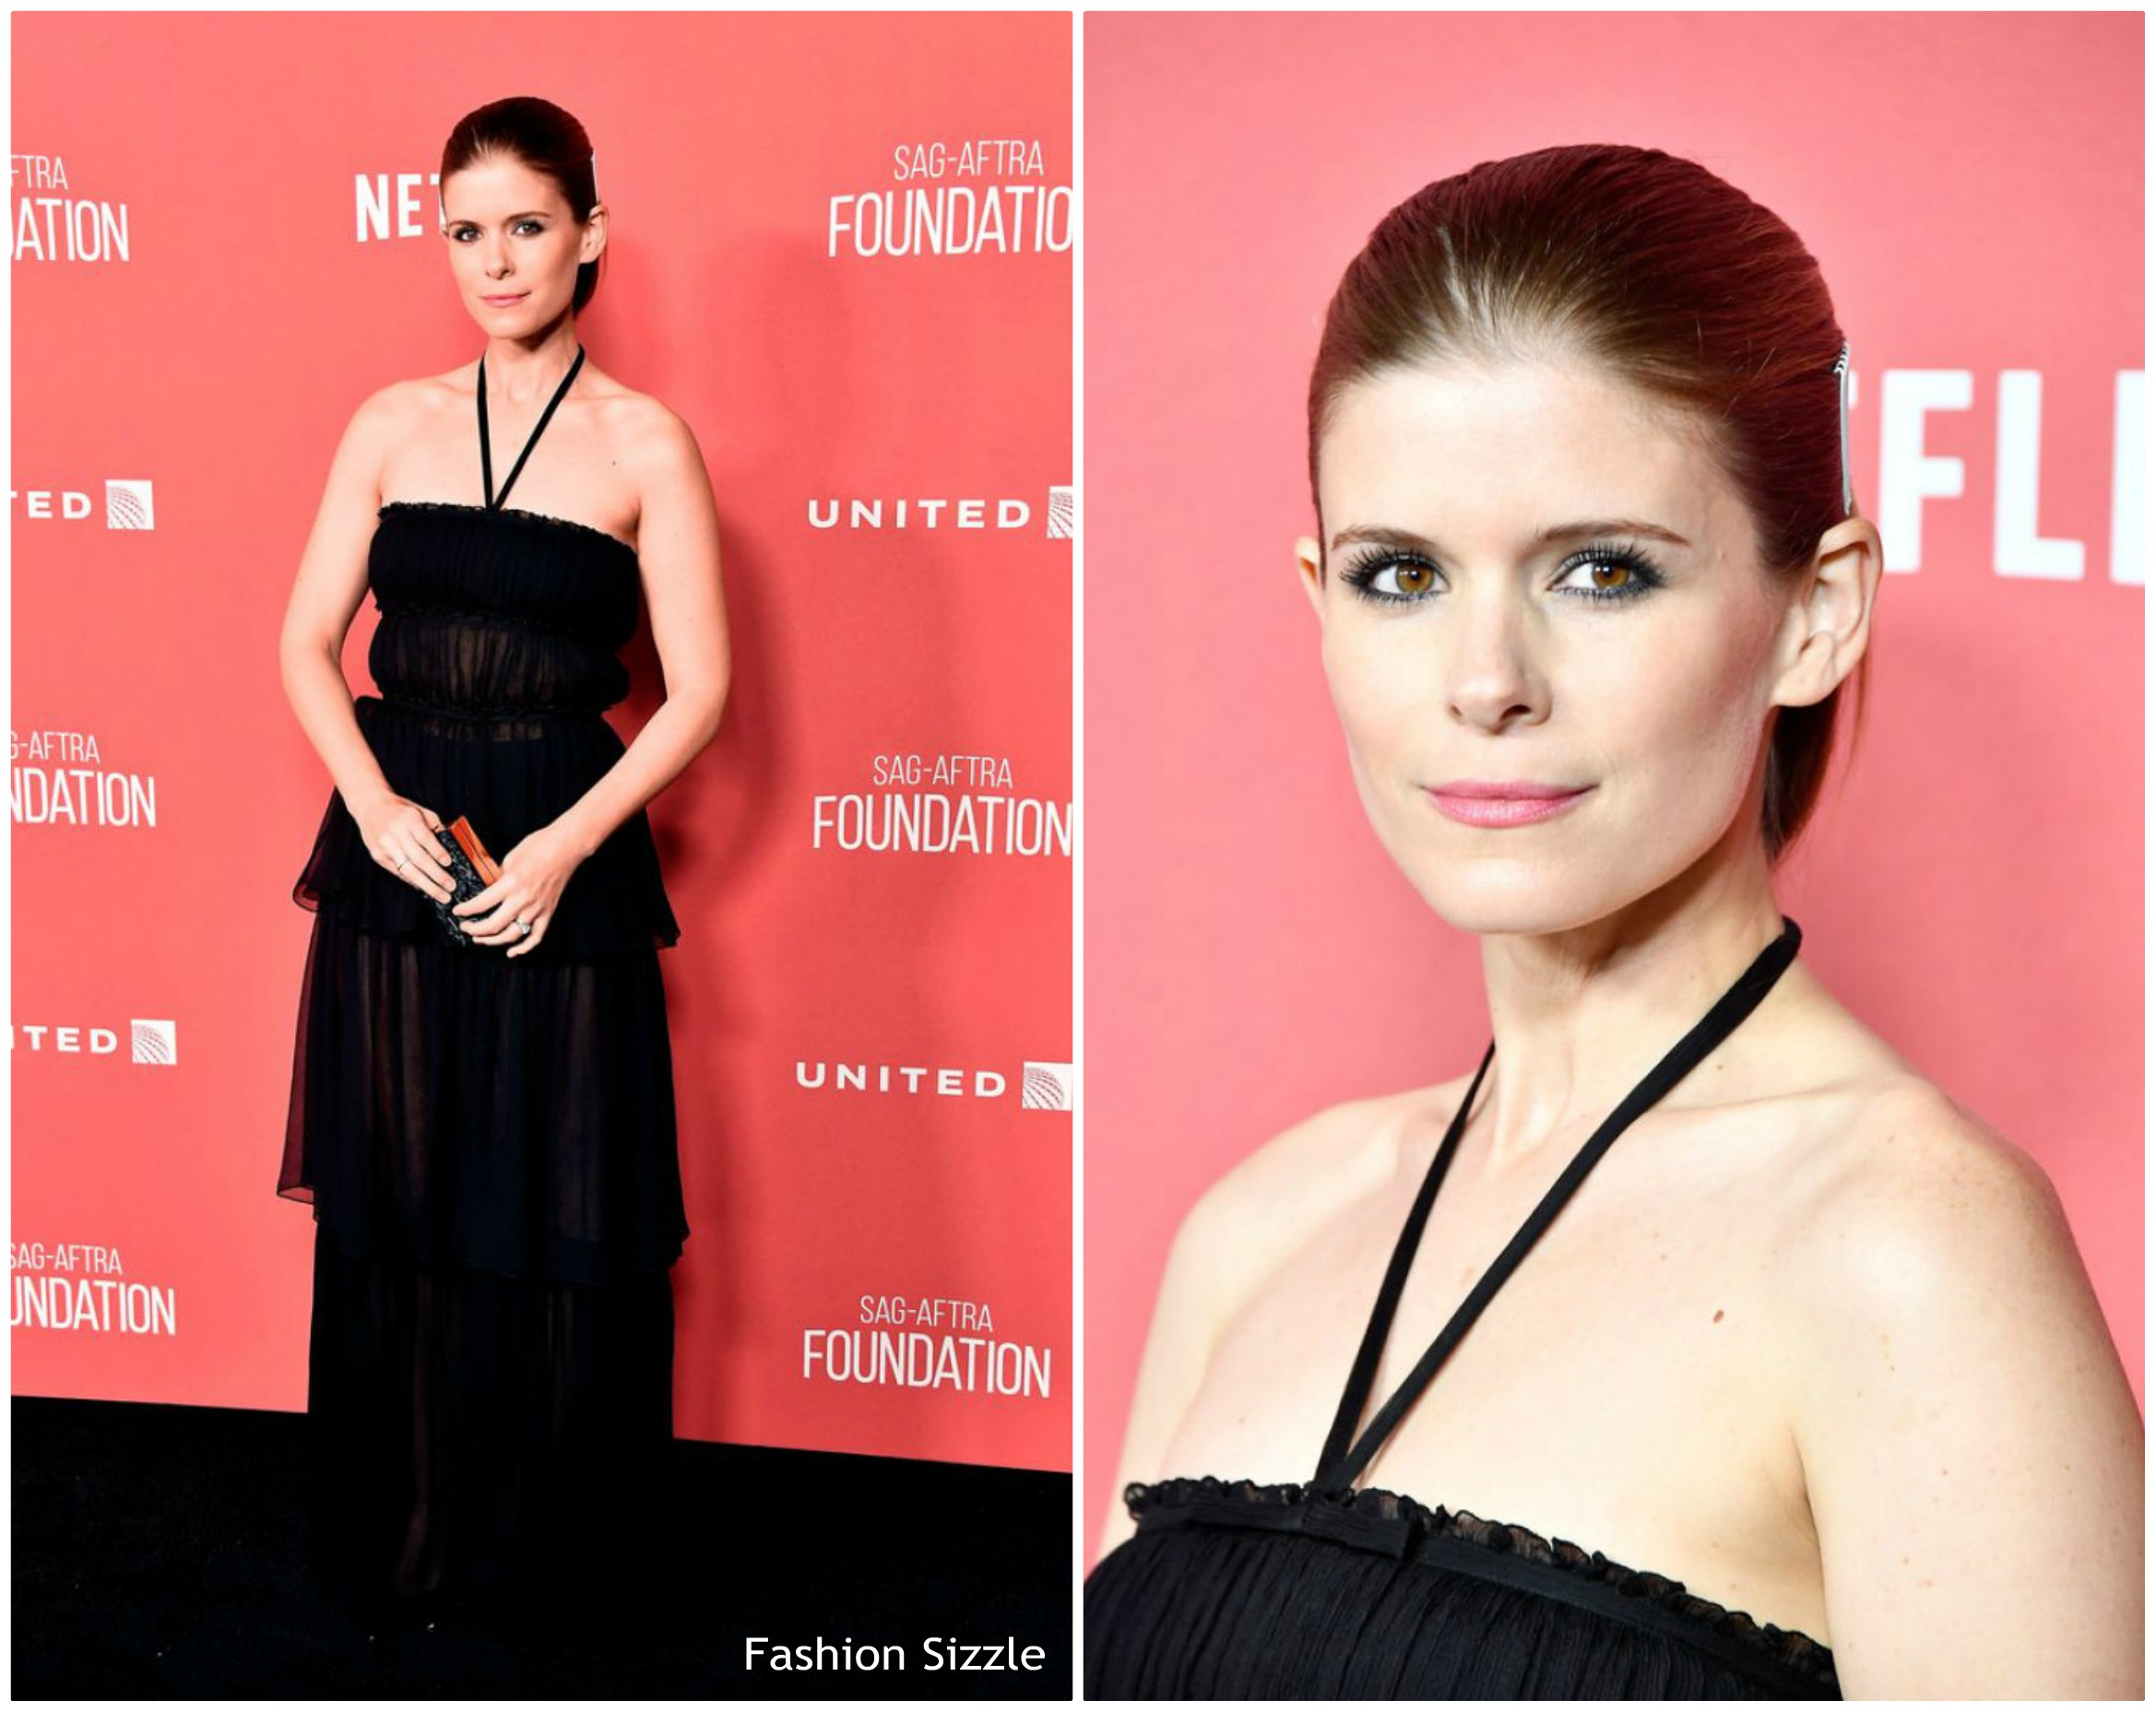 kate-mara-in-christian-dior-sag-aftra-foundationpatron-of-the-artists-awards